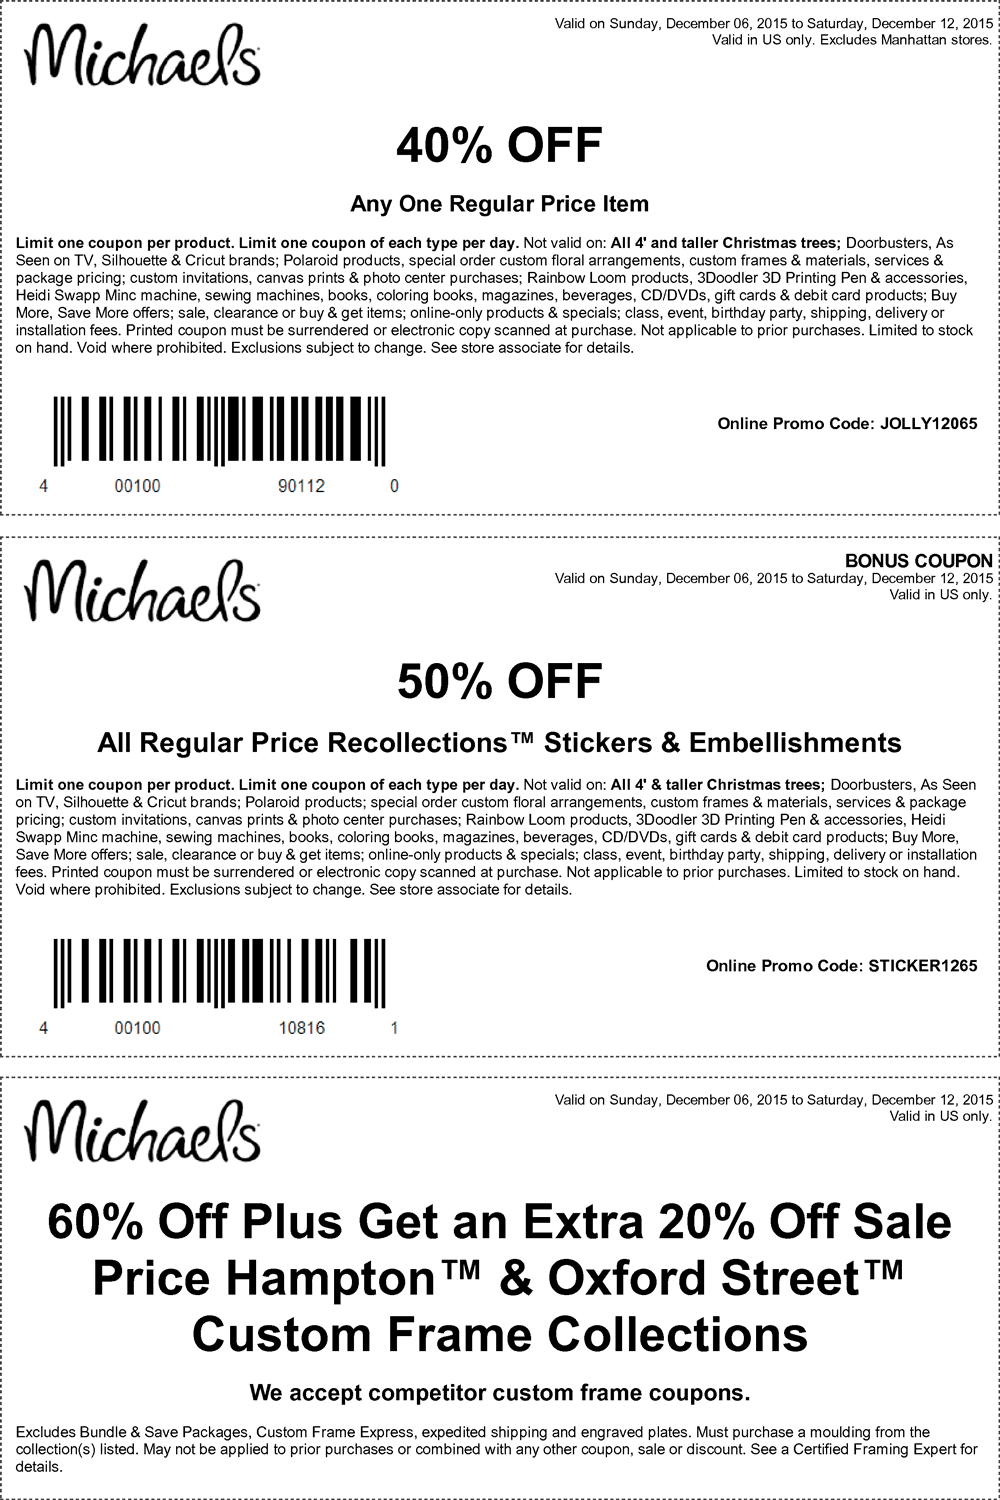 Michaels Coupon February 2017 40% off a single item & more at Michaels, or online via promo code JOLLY12065